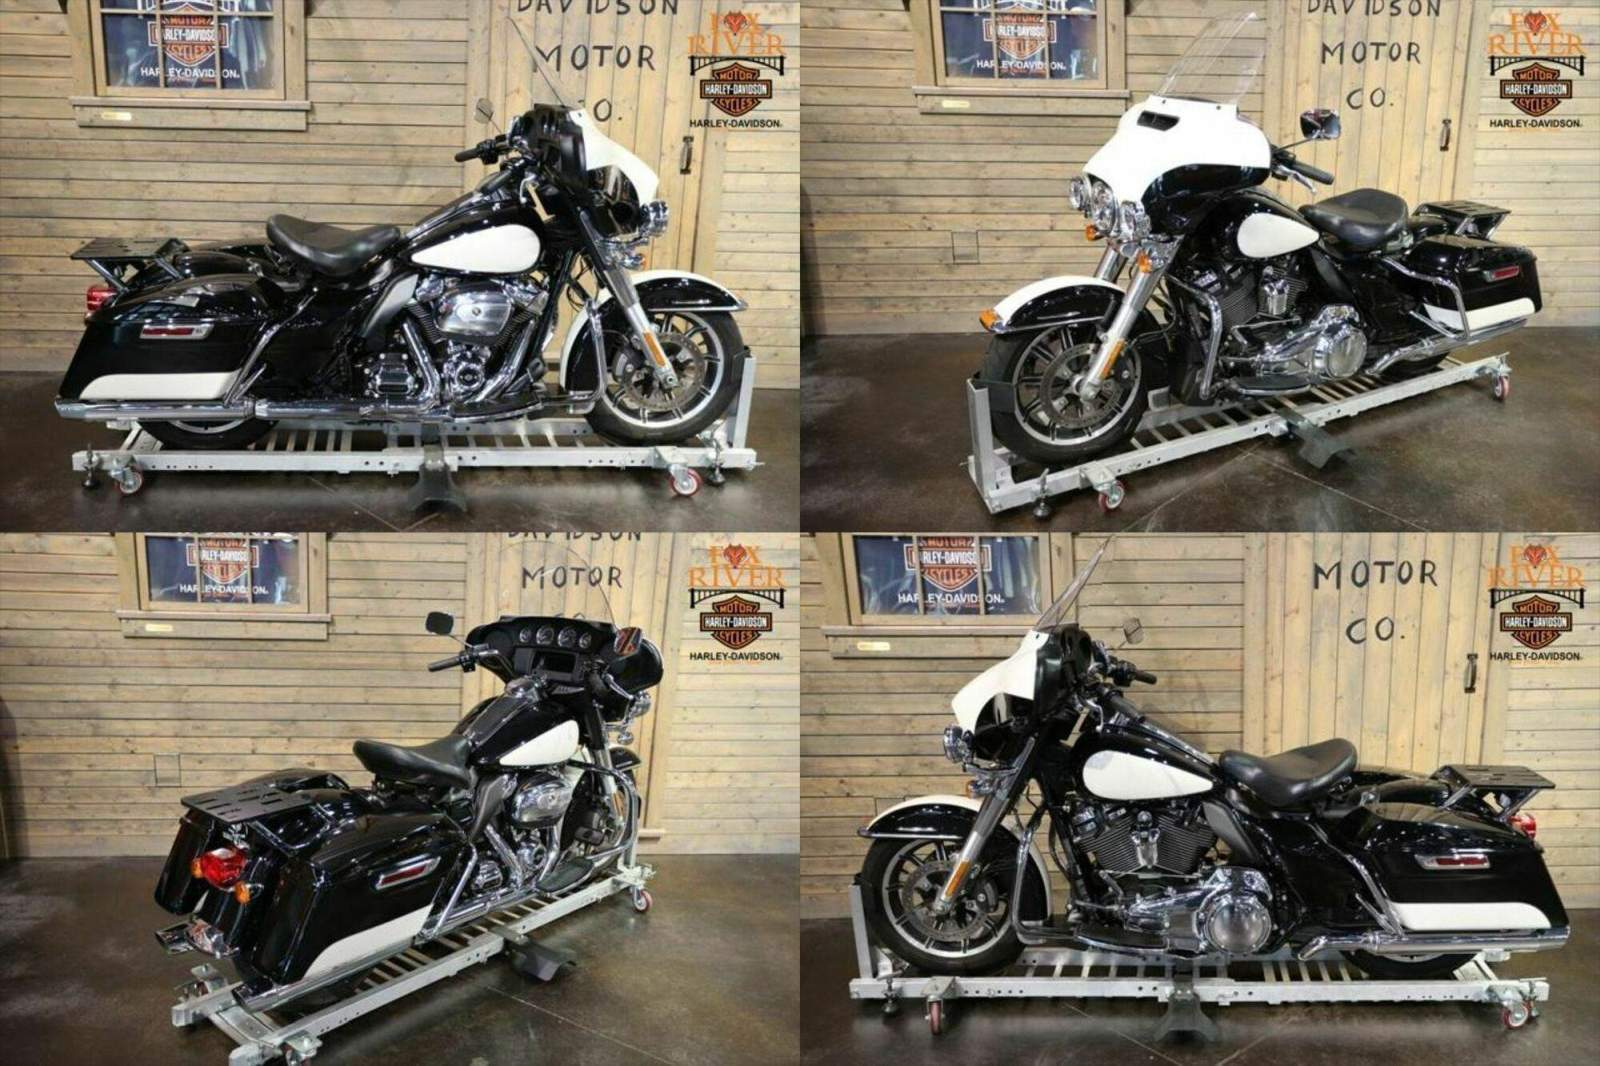 2018 Harley-Davidson FLHTP - Electra Glide® Fire/Rescue BLK/WHT used for sale craigslist